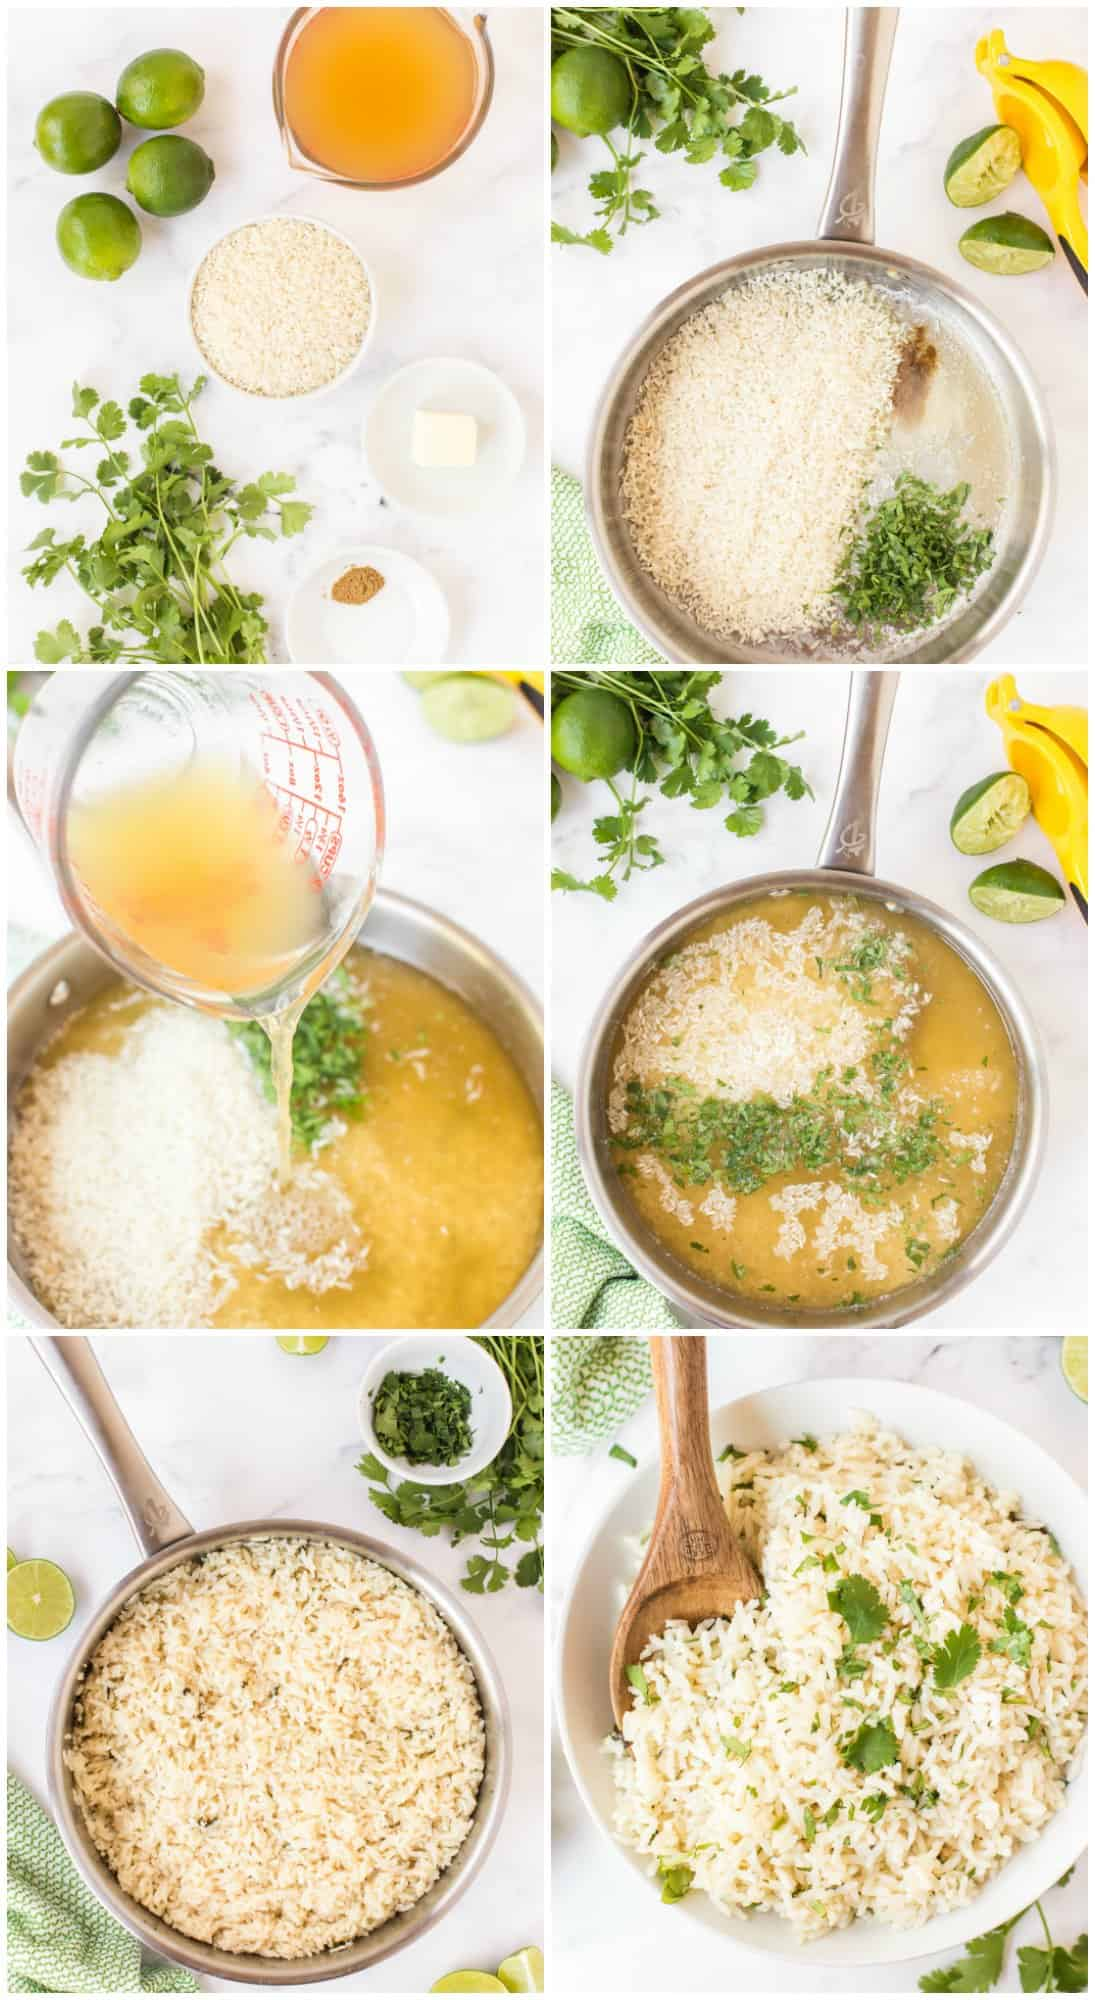 step by step photos of how to make cilantro rice